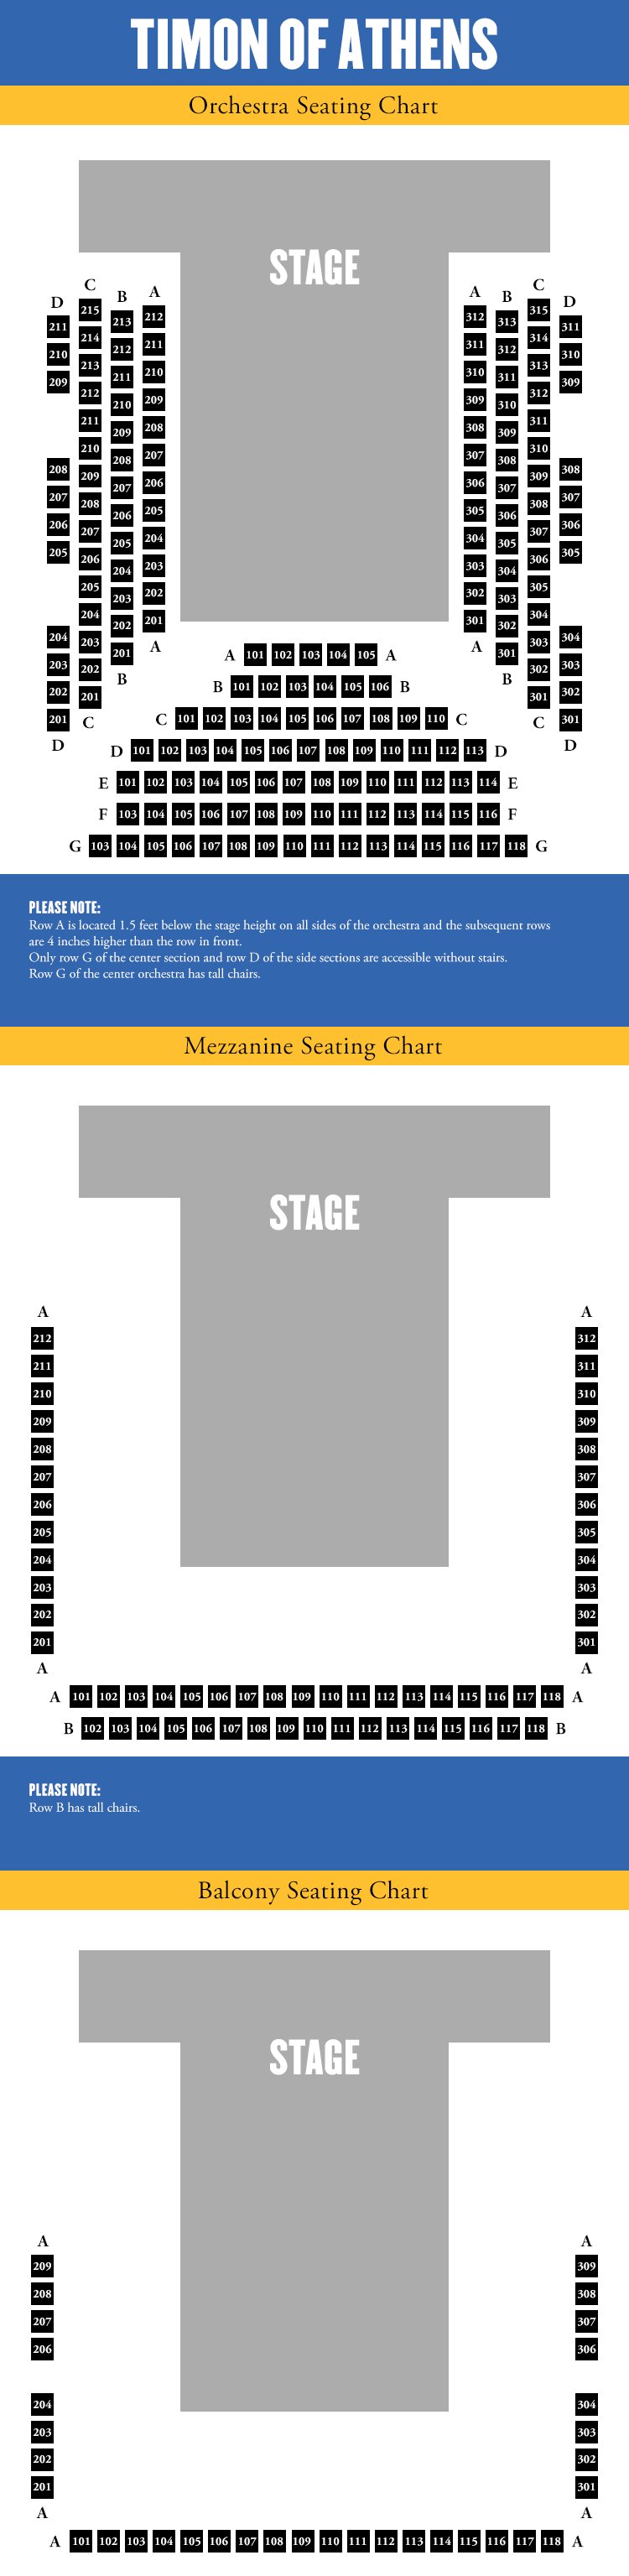 Timon Seating Chart. Click here to buy tickets and view an interactive/accessible seating chart.